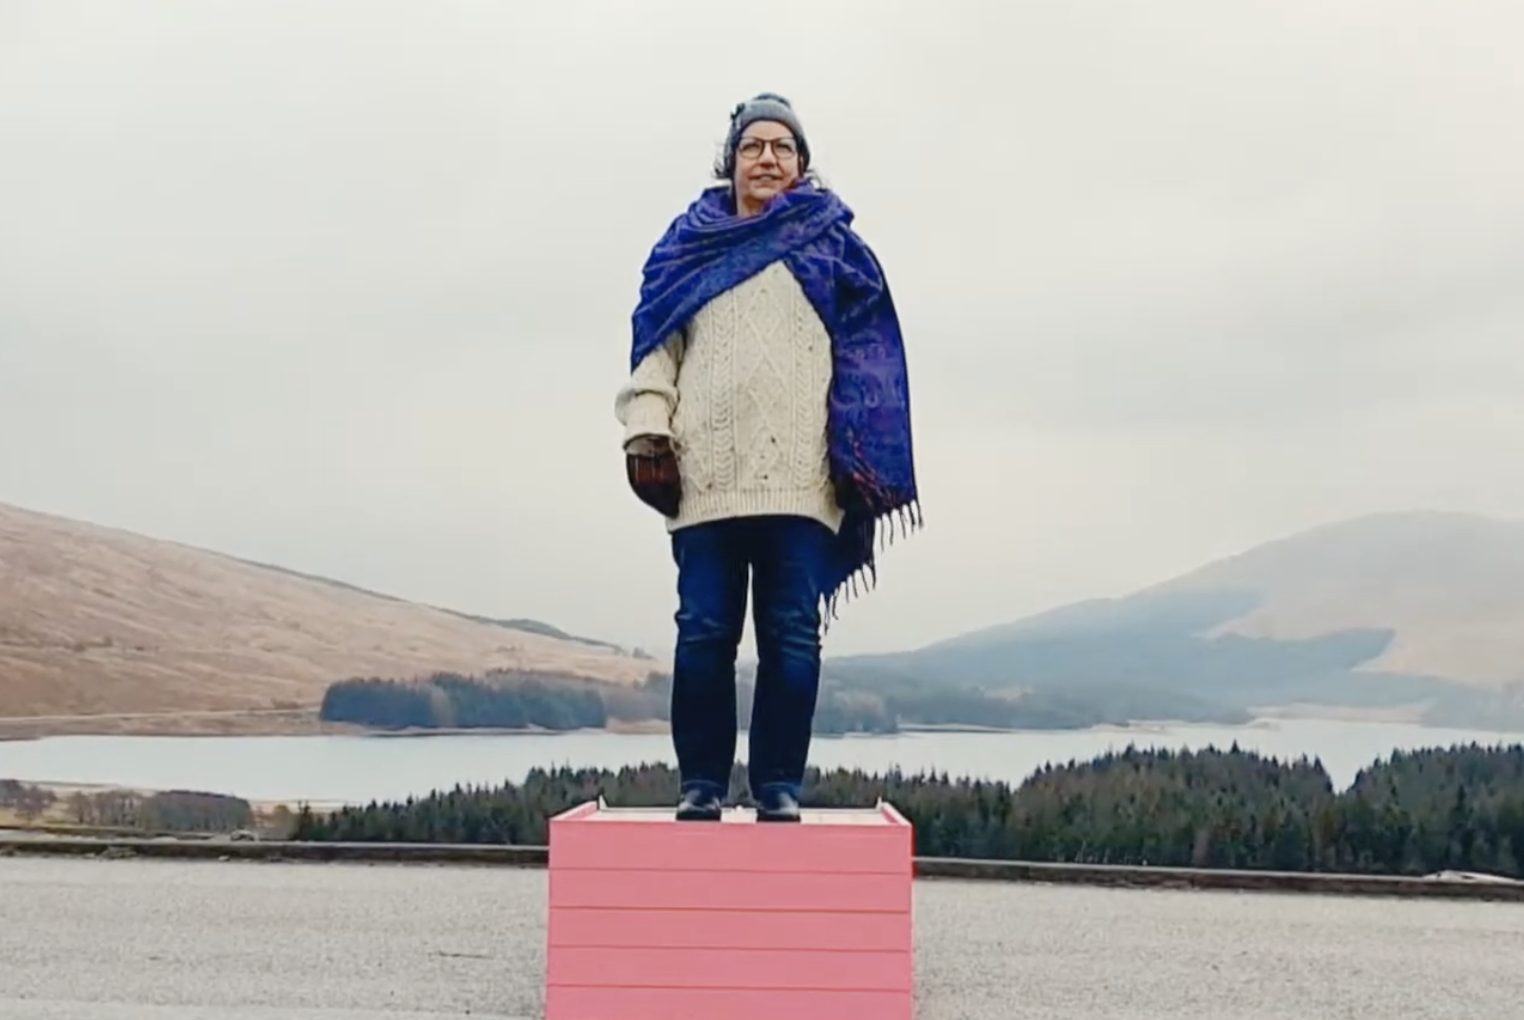 giffgaff Gives Its Members a Soapbox to Stand on in Latest Campaign